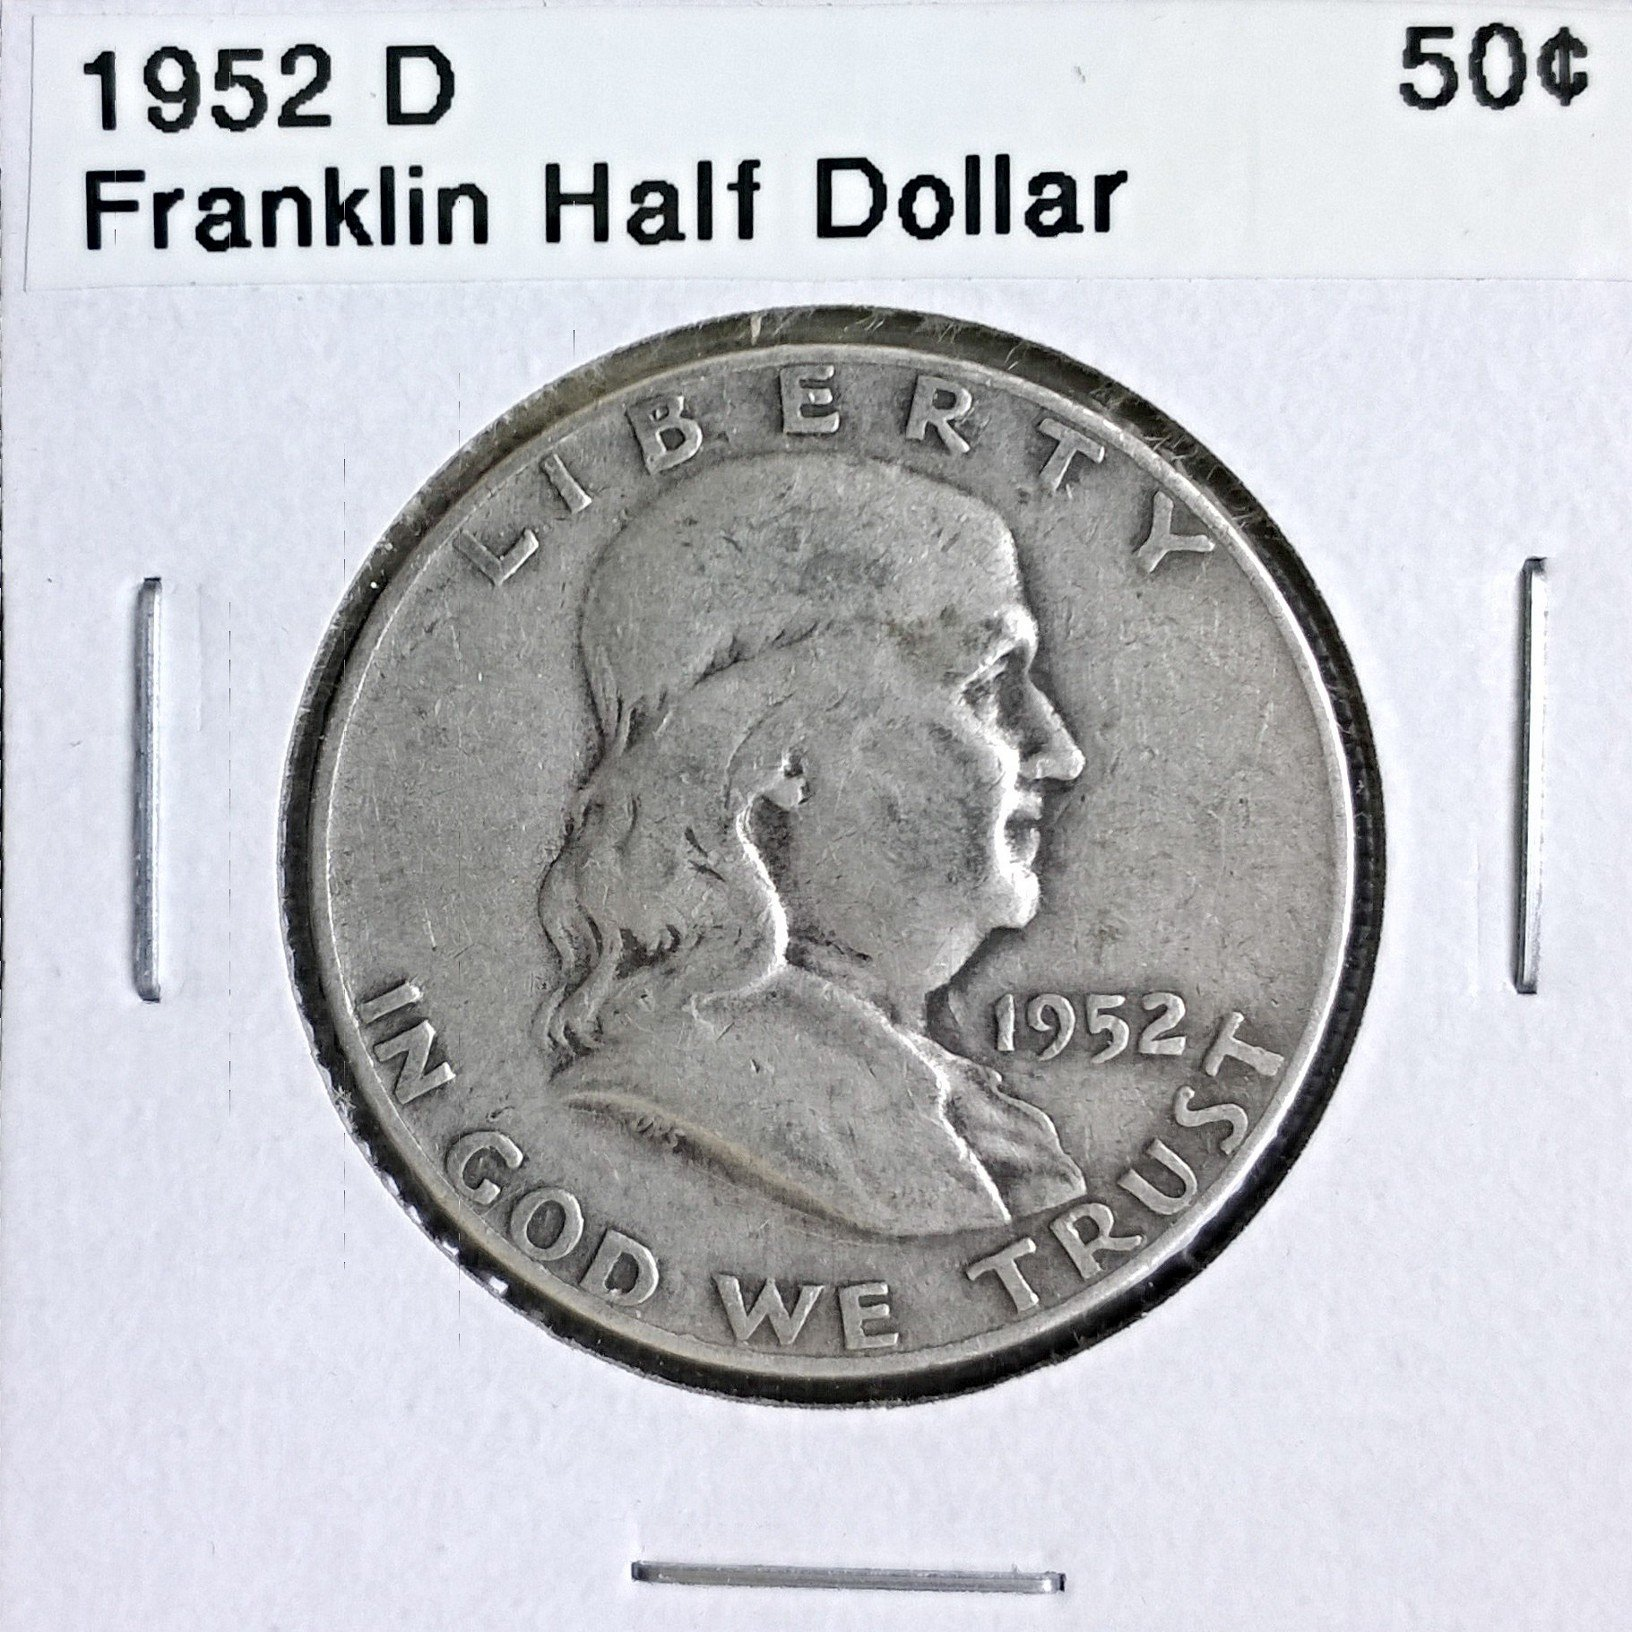 1952 D Franklin Half Dollar 50¢ BU Christmas gift ideas 2018